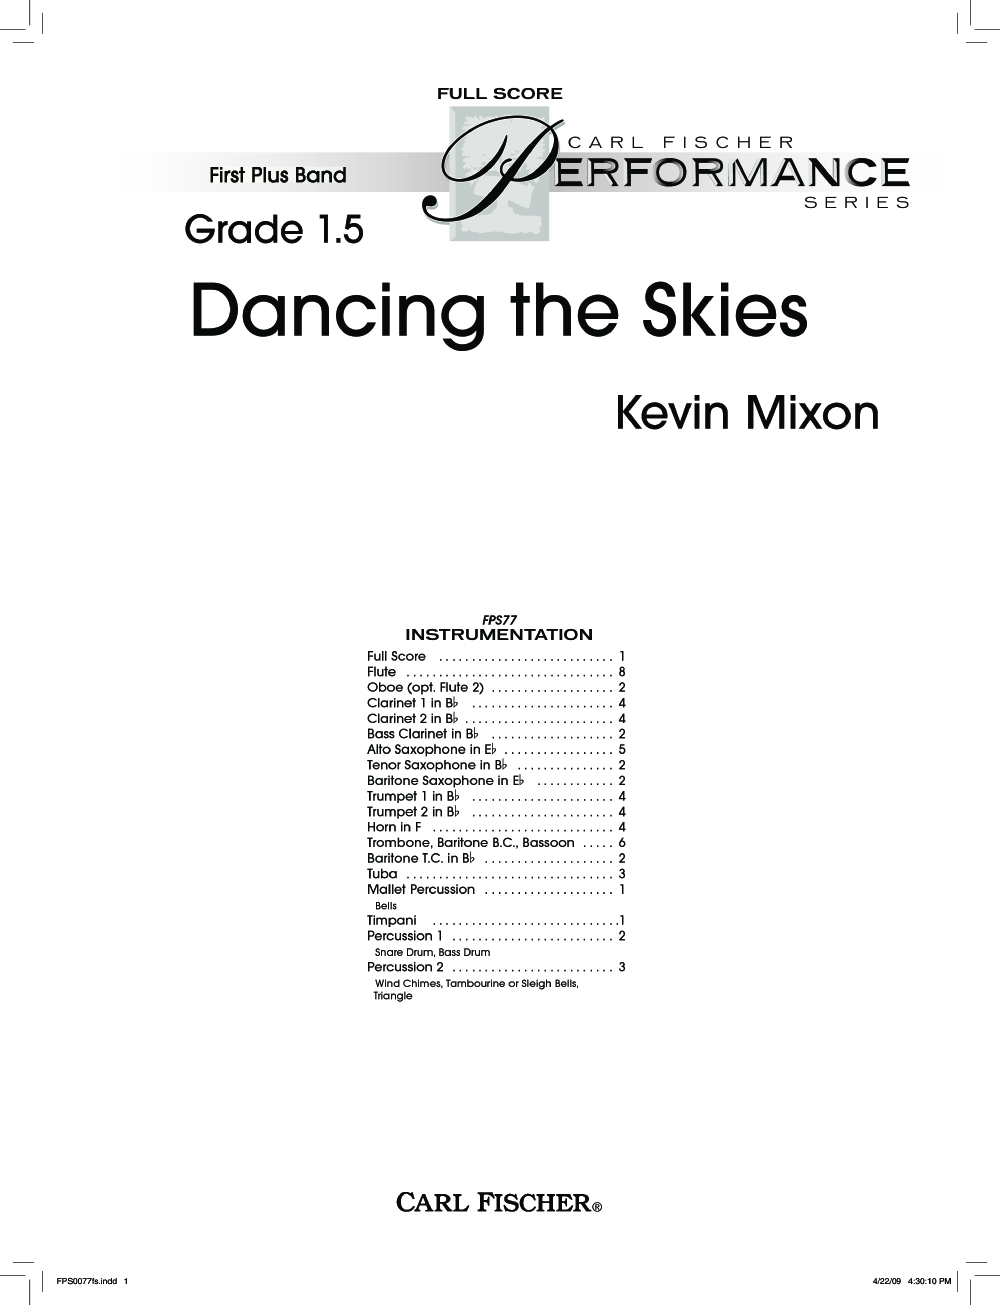 Dancing the Skies by Kevin Mixon  J.W. Pepper Sheet Music